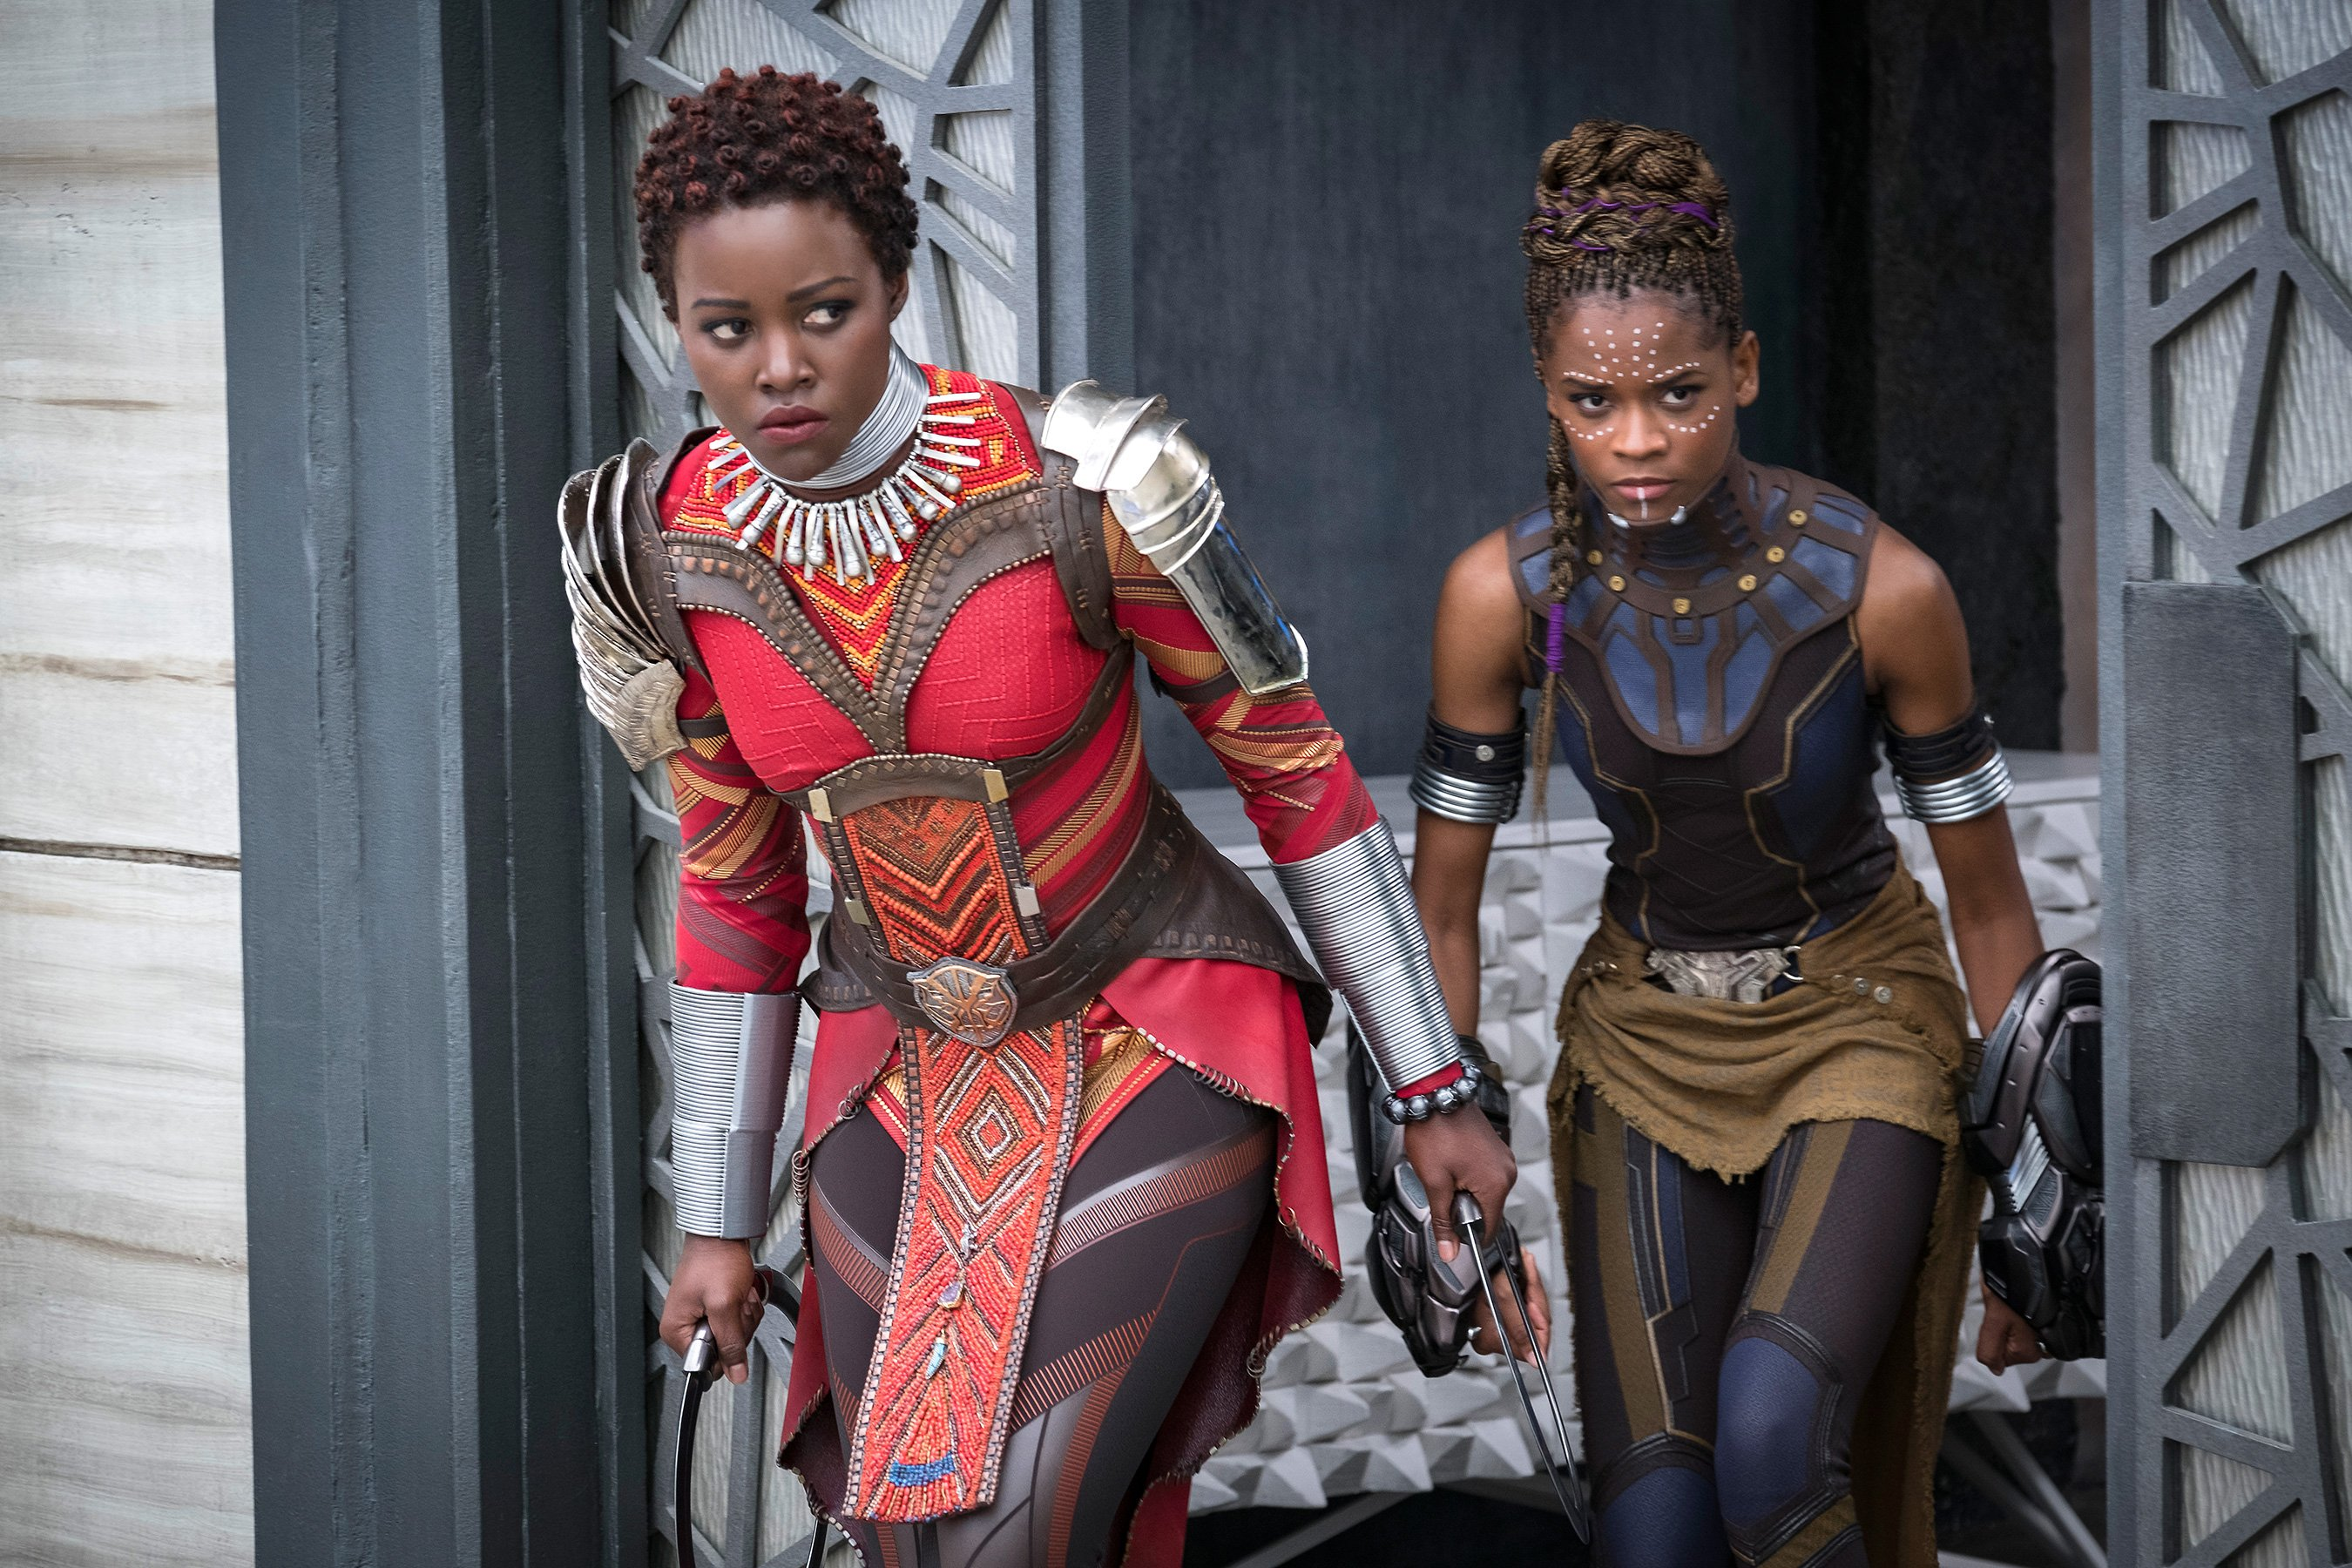 Black Panther: Lupita Nyong'o tried to buy tickets but it was already sold out